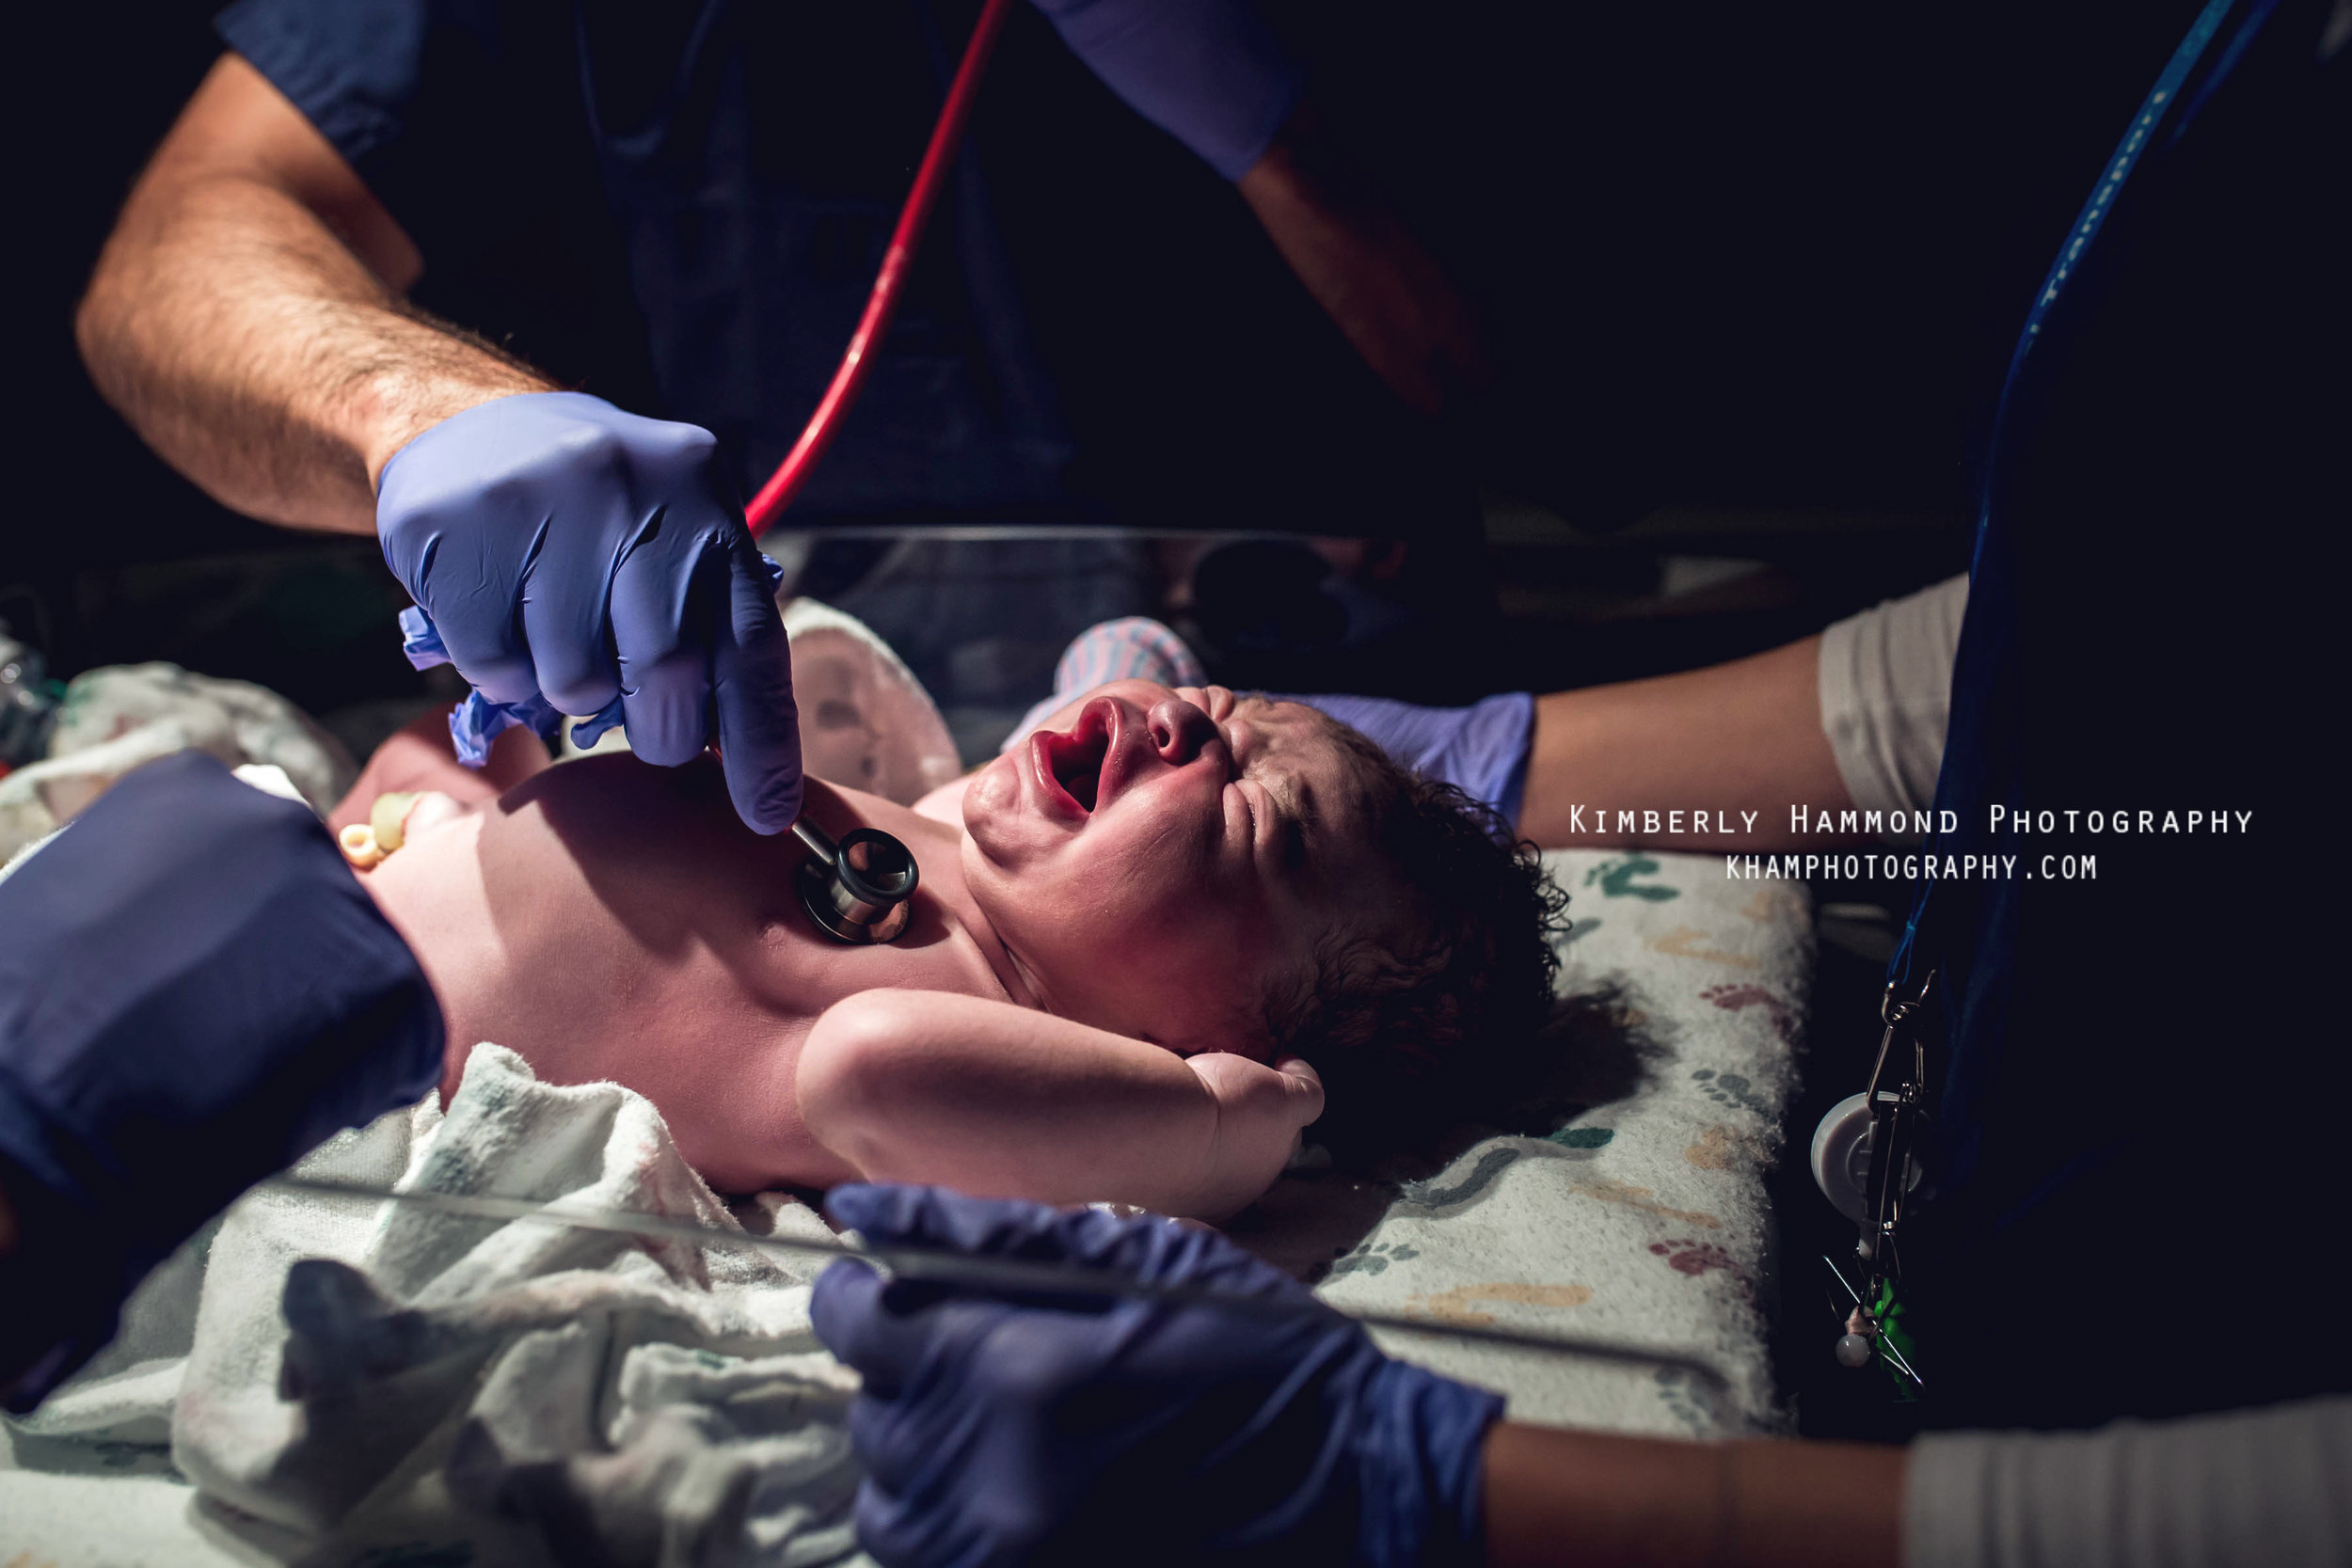 Newborn is examined after birth at Baylor Medical Center in Dallas, TX.